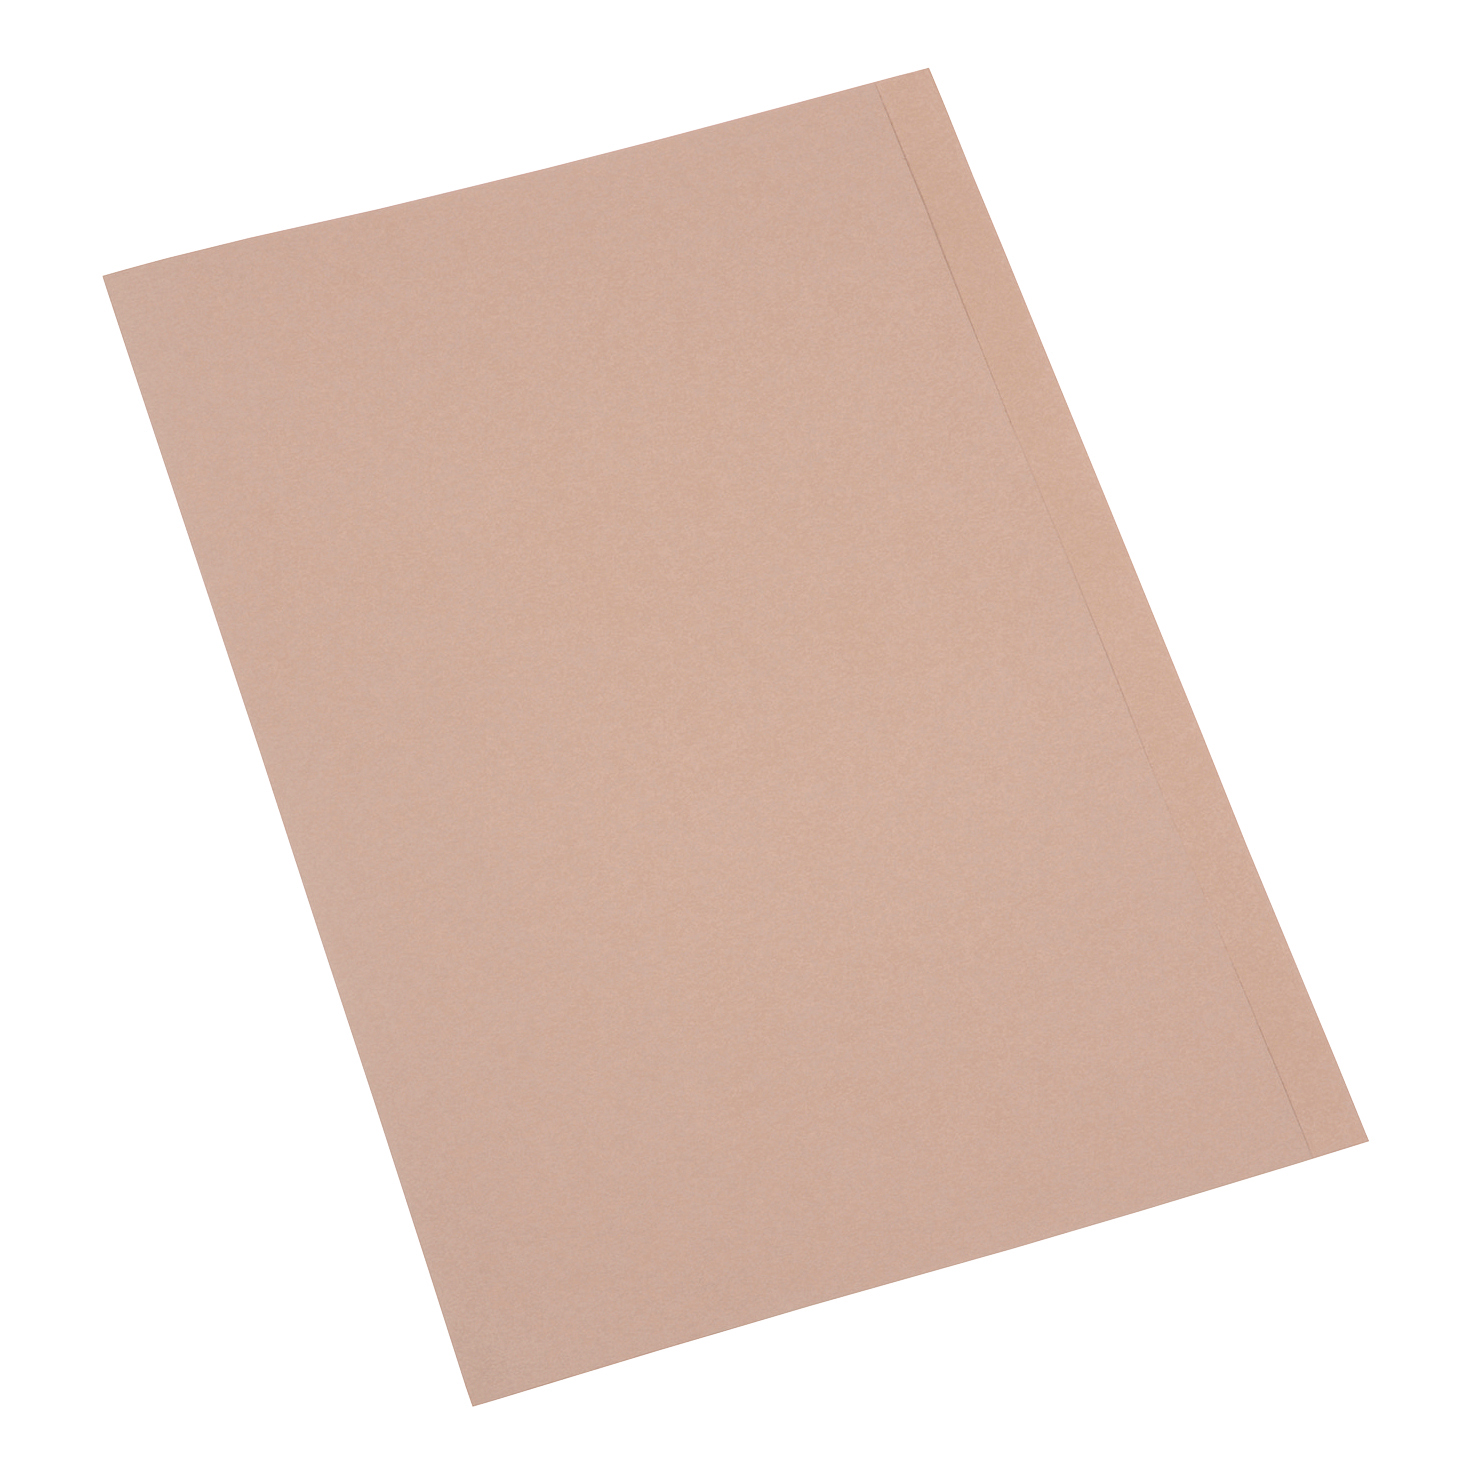 5 Star Premier Square Cut Folder Recycled Pre-punched 250gsm Foolscap Buff